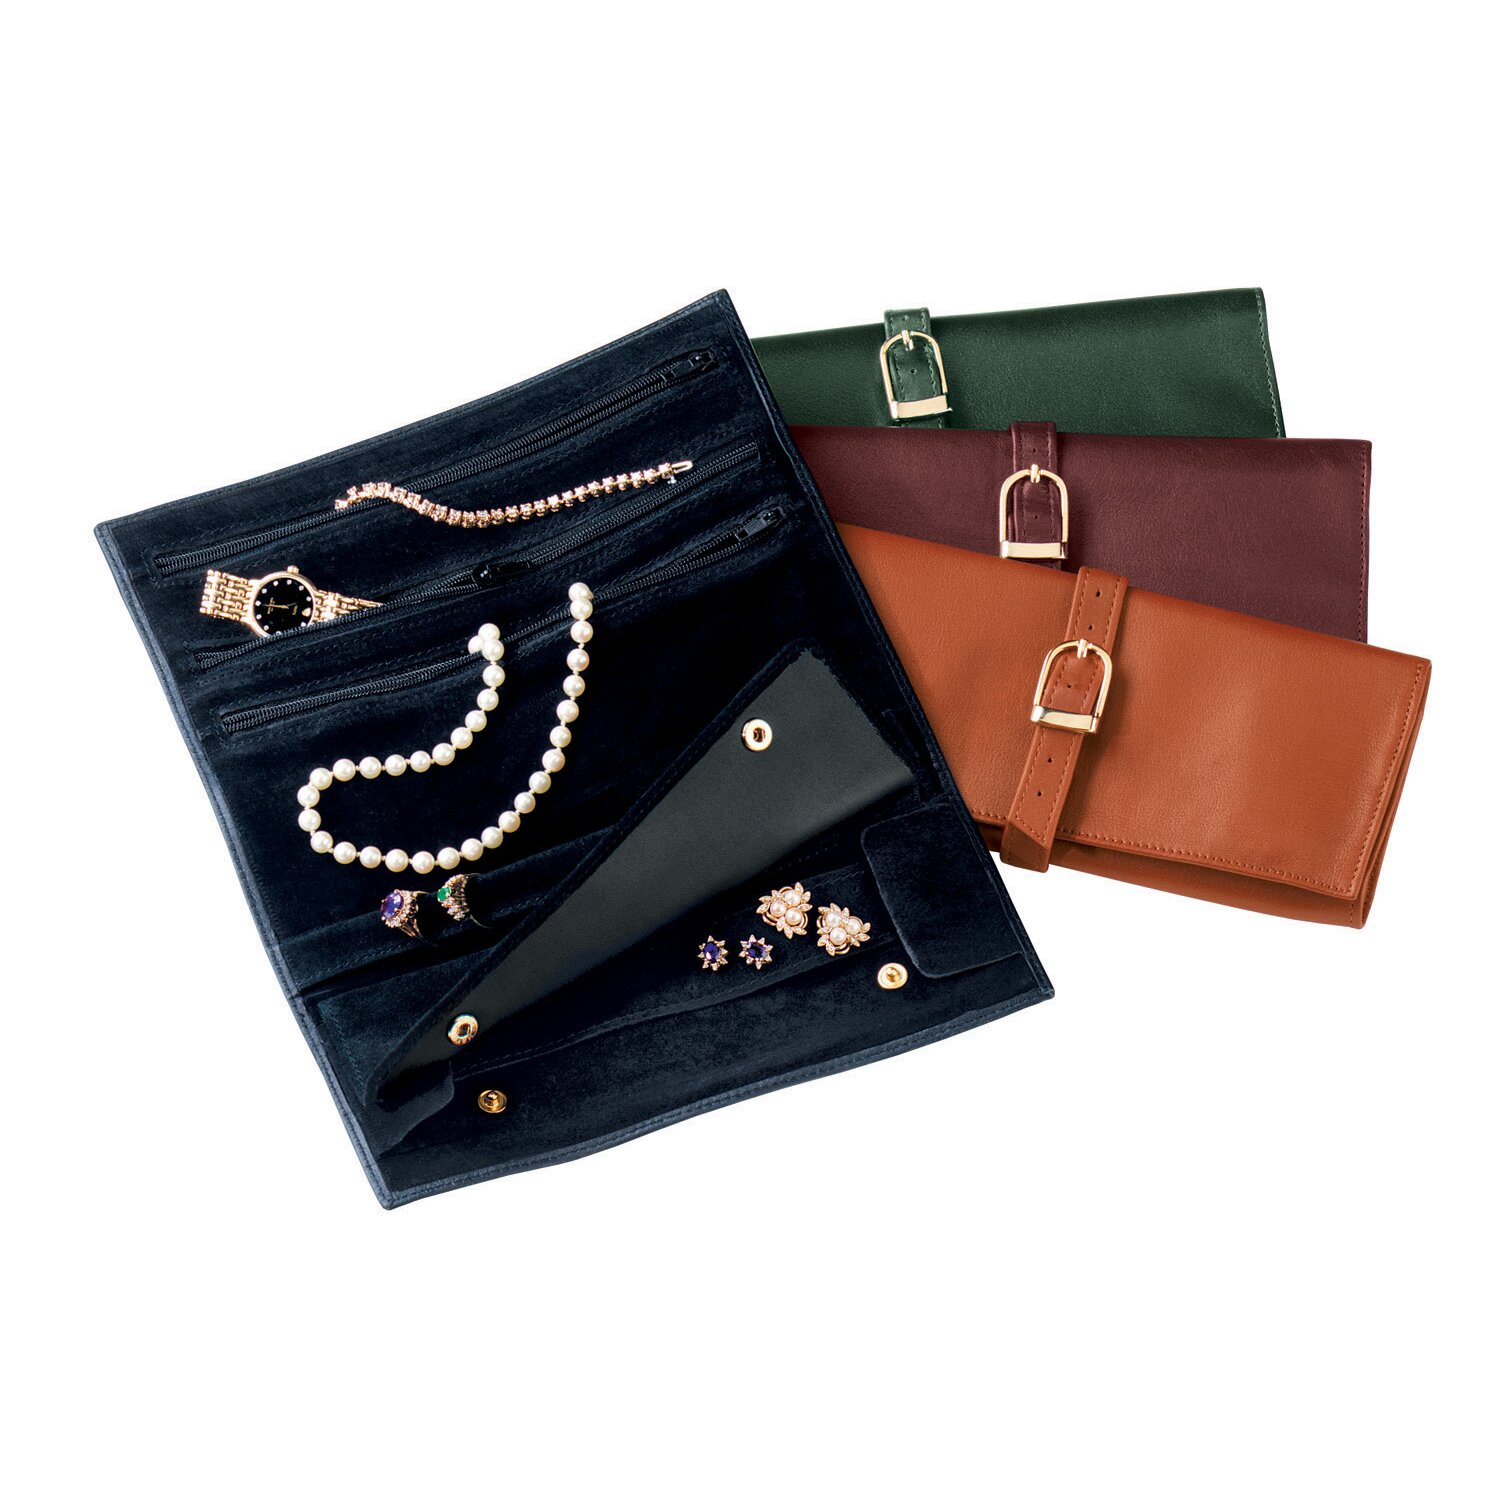 Royce Leather Royce Leather Suede Lined Jewelry Roll ...